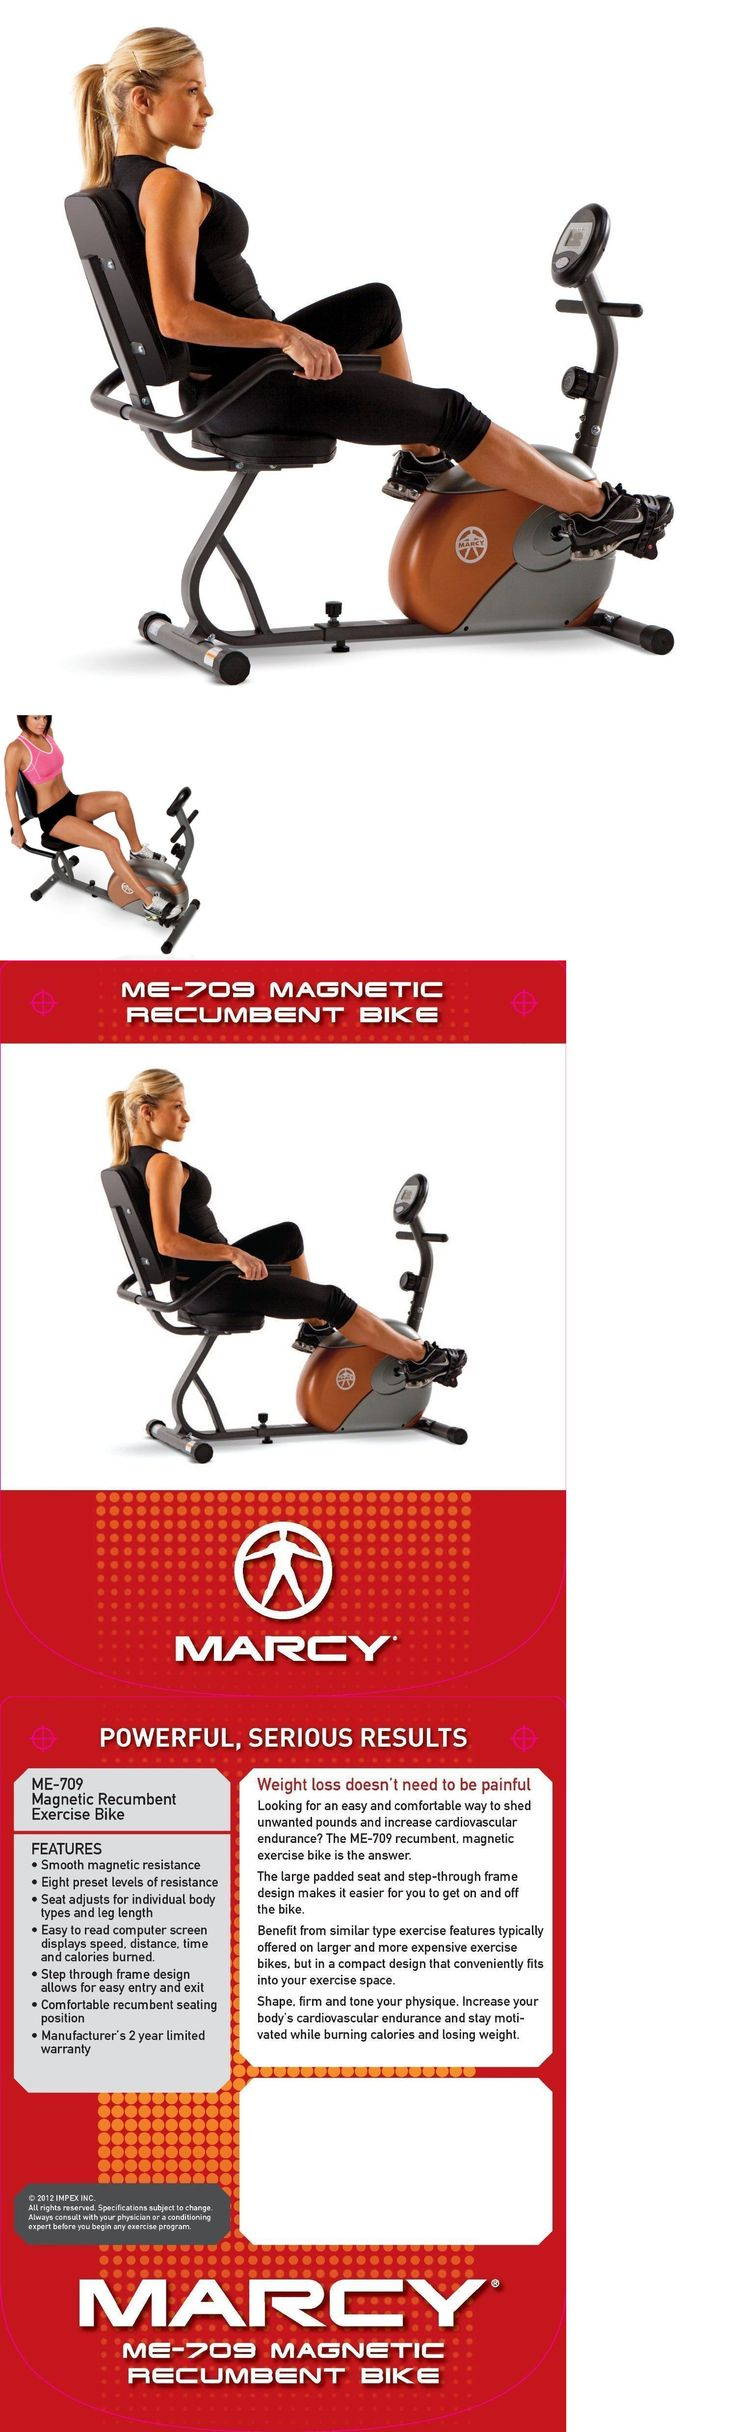 Exercise Bikes 58102: Recumbent Exercise Bike Fitness Stationary Bicycle Cardio Workout Indoor Cycling BUY IT NOW ONLY: $135.0